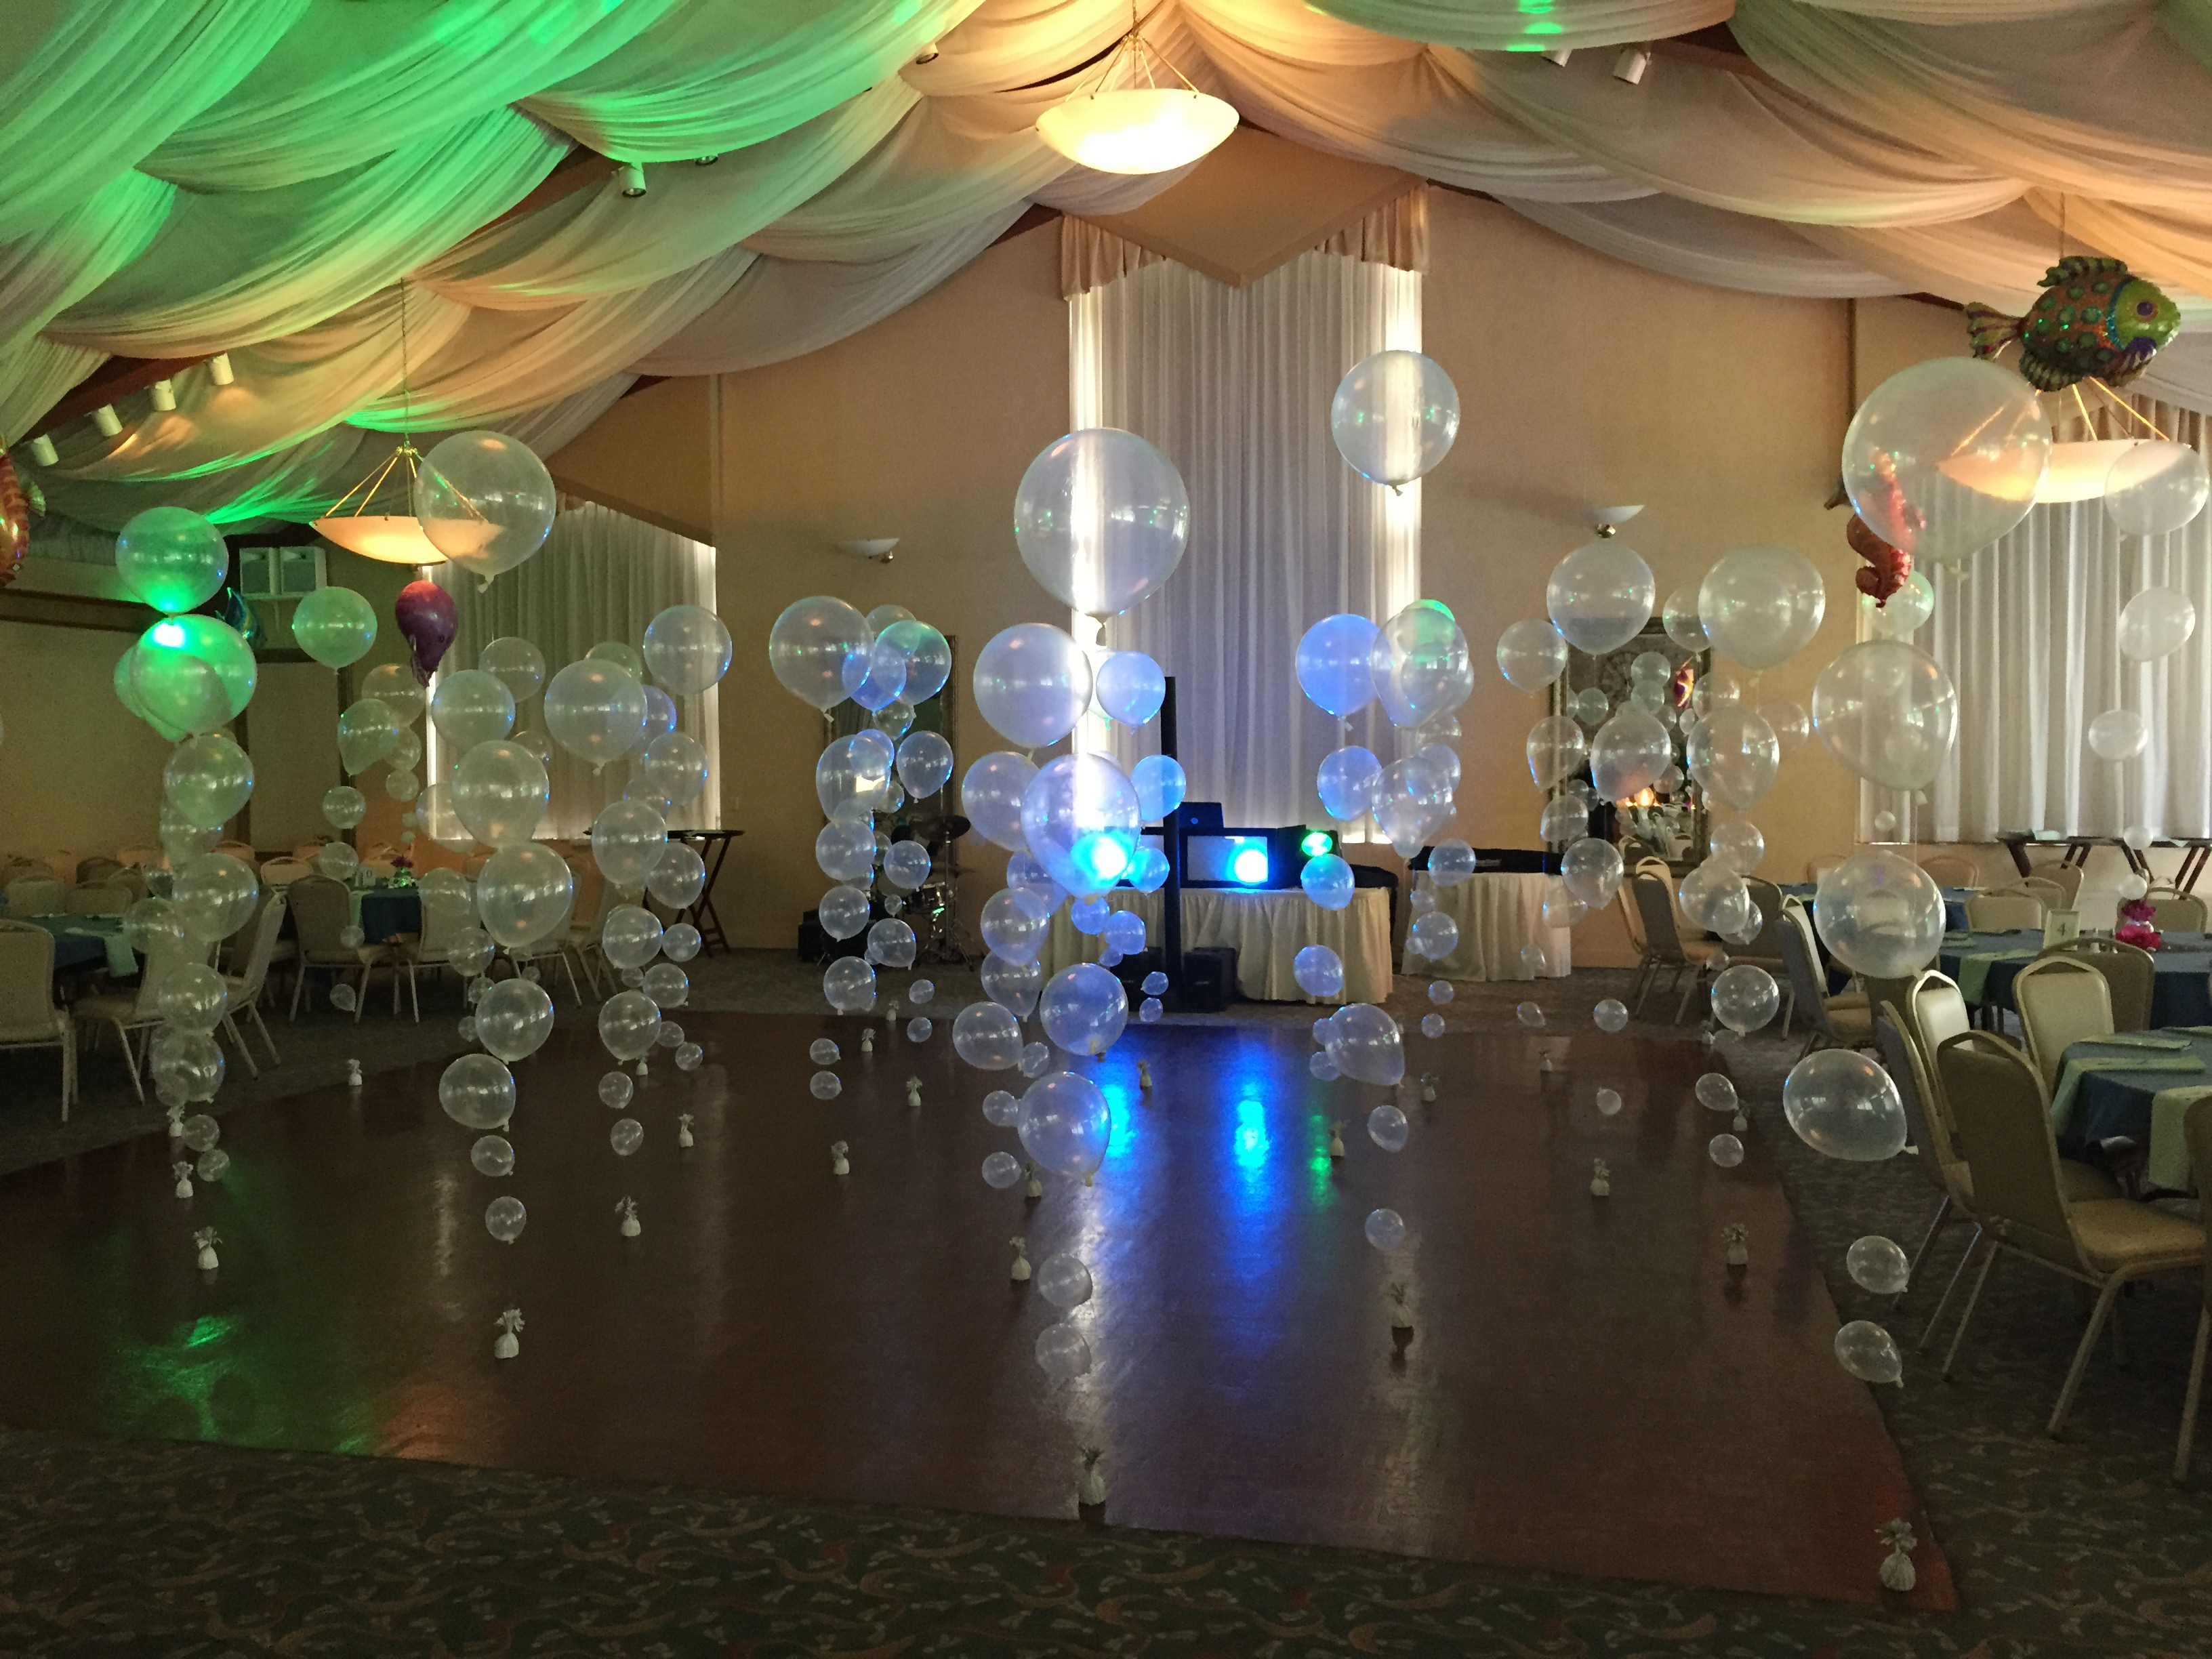 Outstanding Under The Sea Party Theme Thedjservice Com Albany Ny Wedding Largest Home Design Picture Inspirations Pitcheantrous